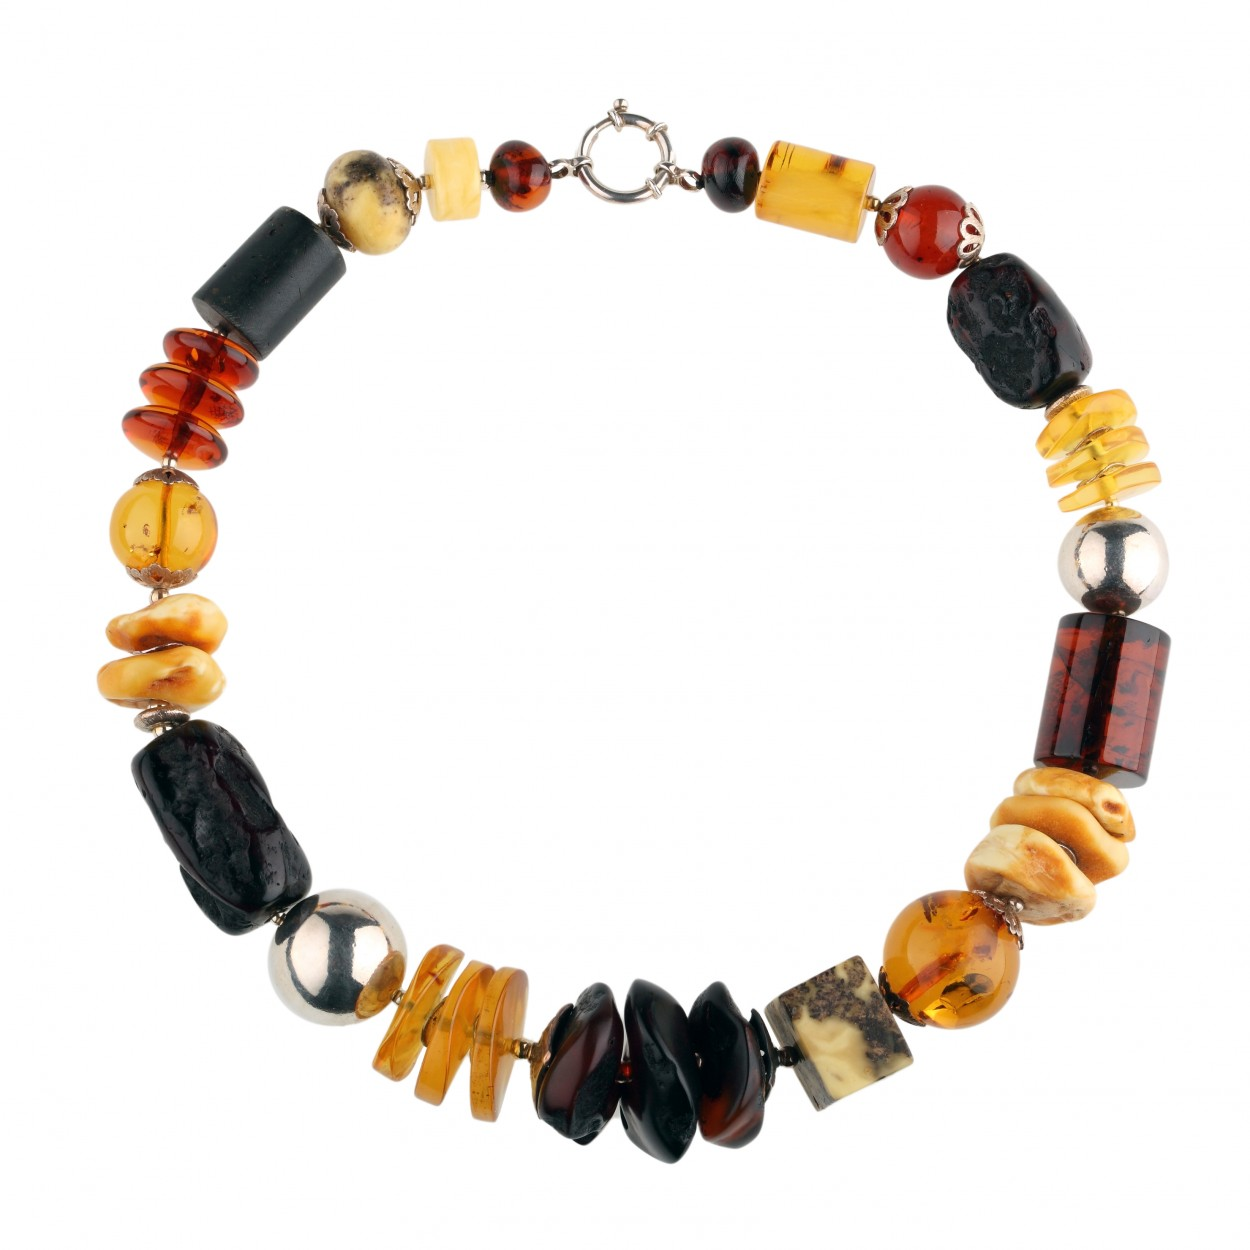 Stone Age Amber Necklace